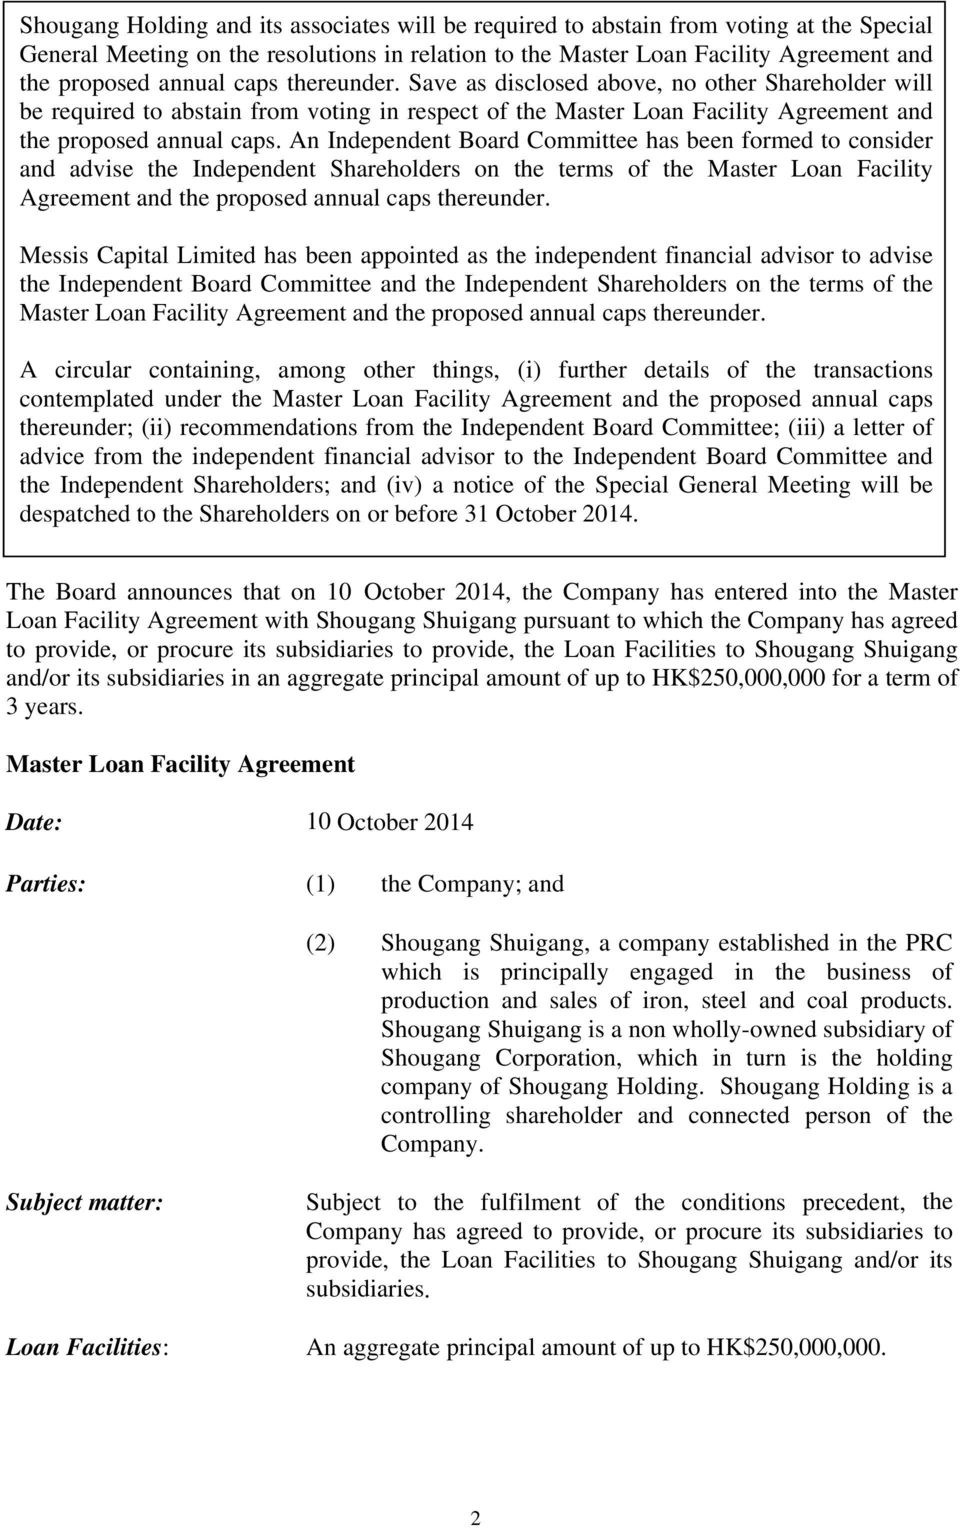 An Independent Board Committee has been formed to consider and advise the Independent Shareholders on the terms of the Master Loan Facility Agreement and the proposed annual caps thereunder.